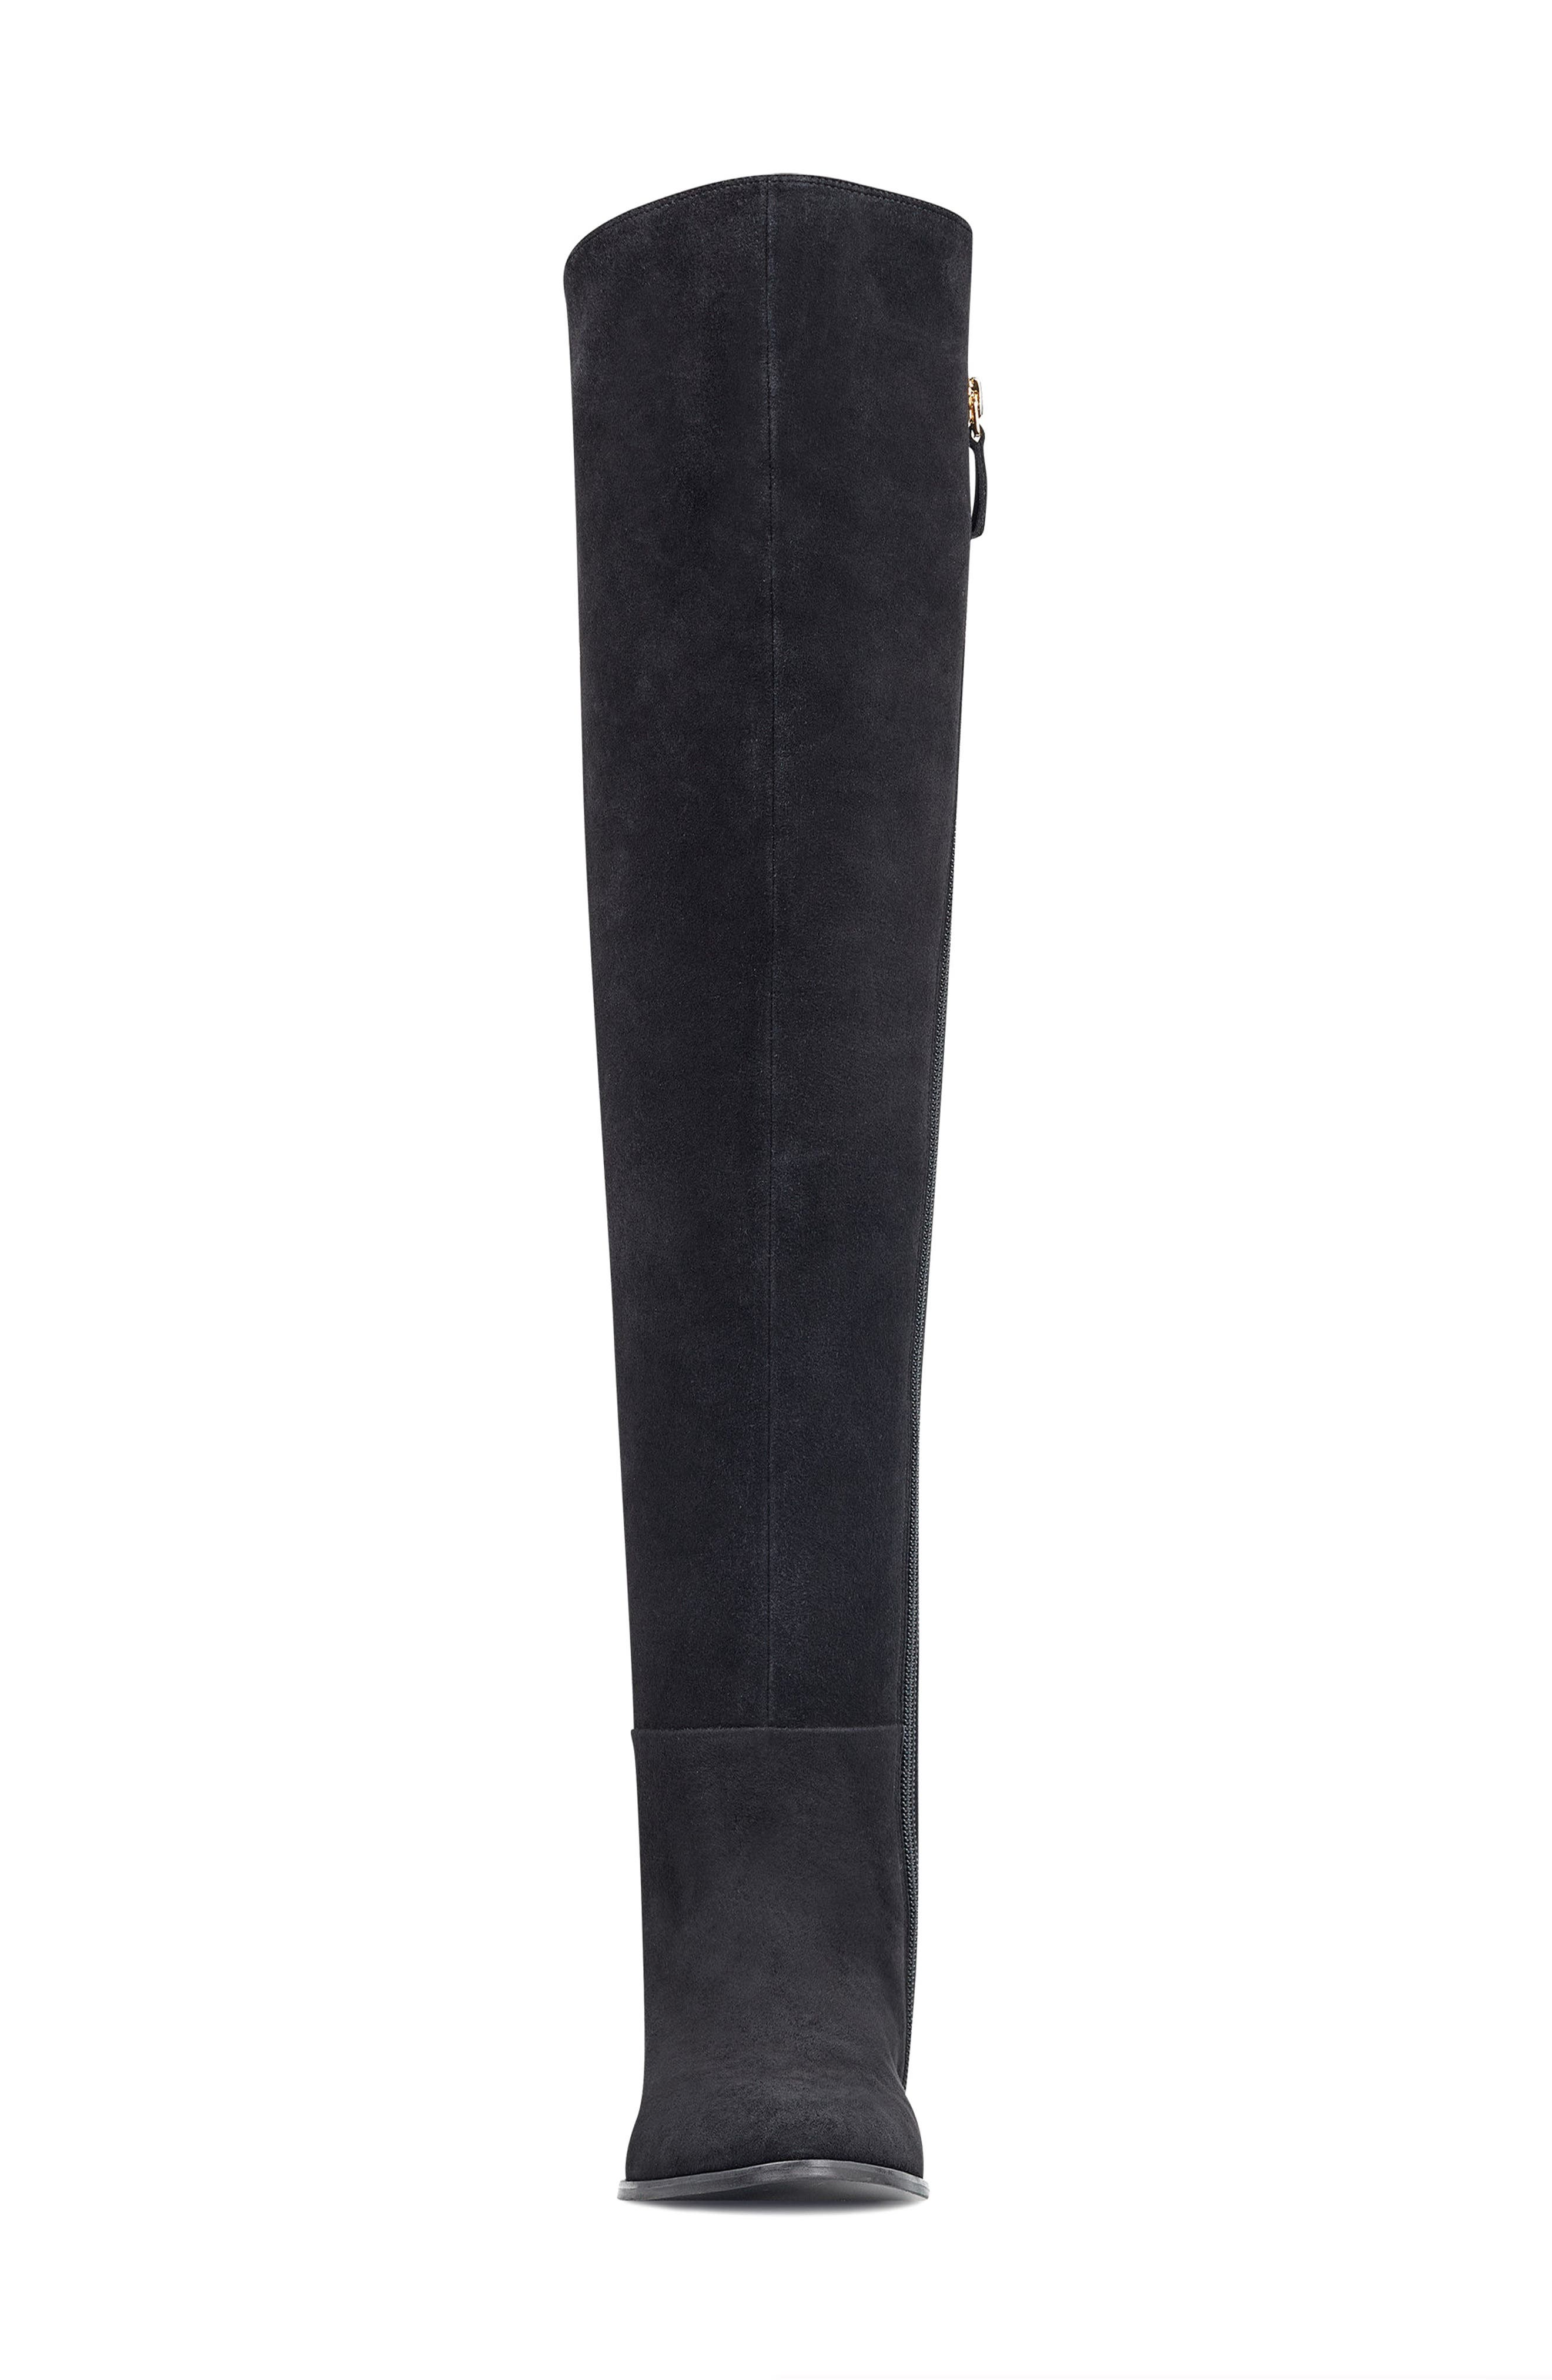 NINE WEST,                             Eltynn Over the Knee Boot,                             Alternate thumbnail 4, color,                             001